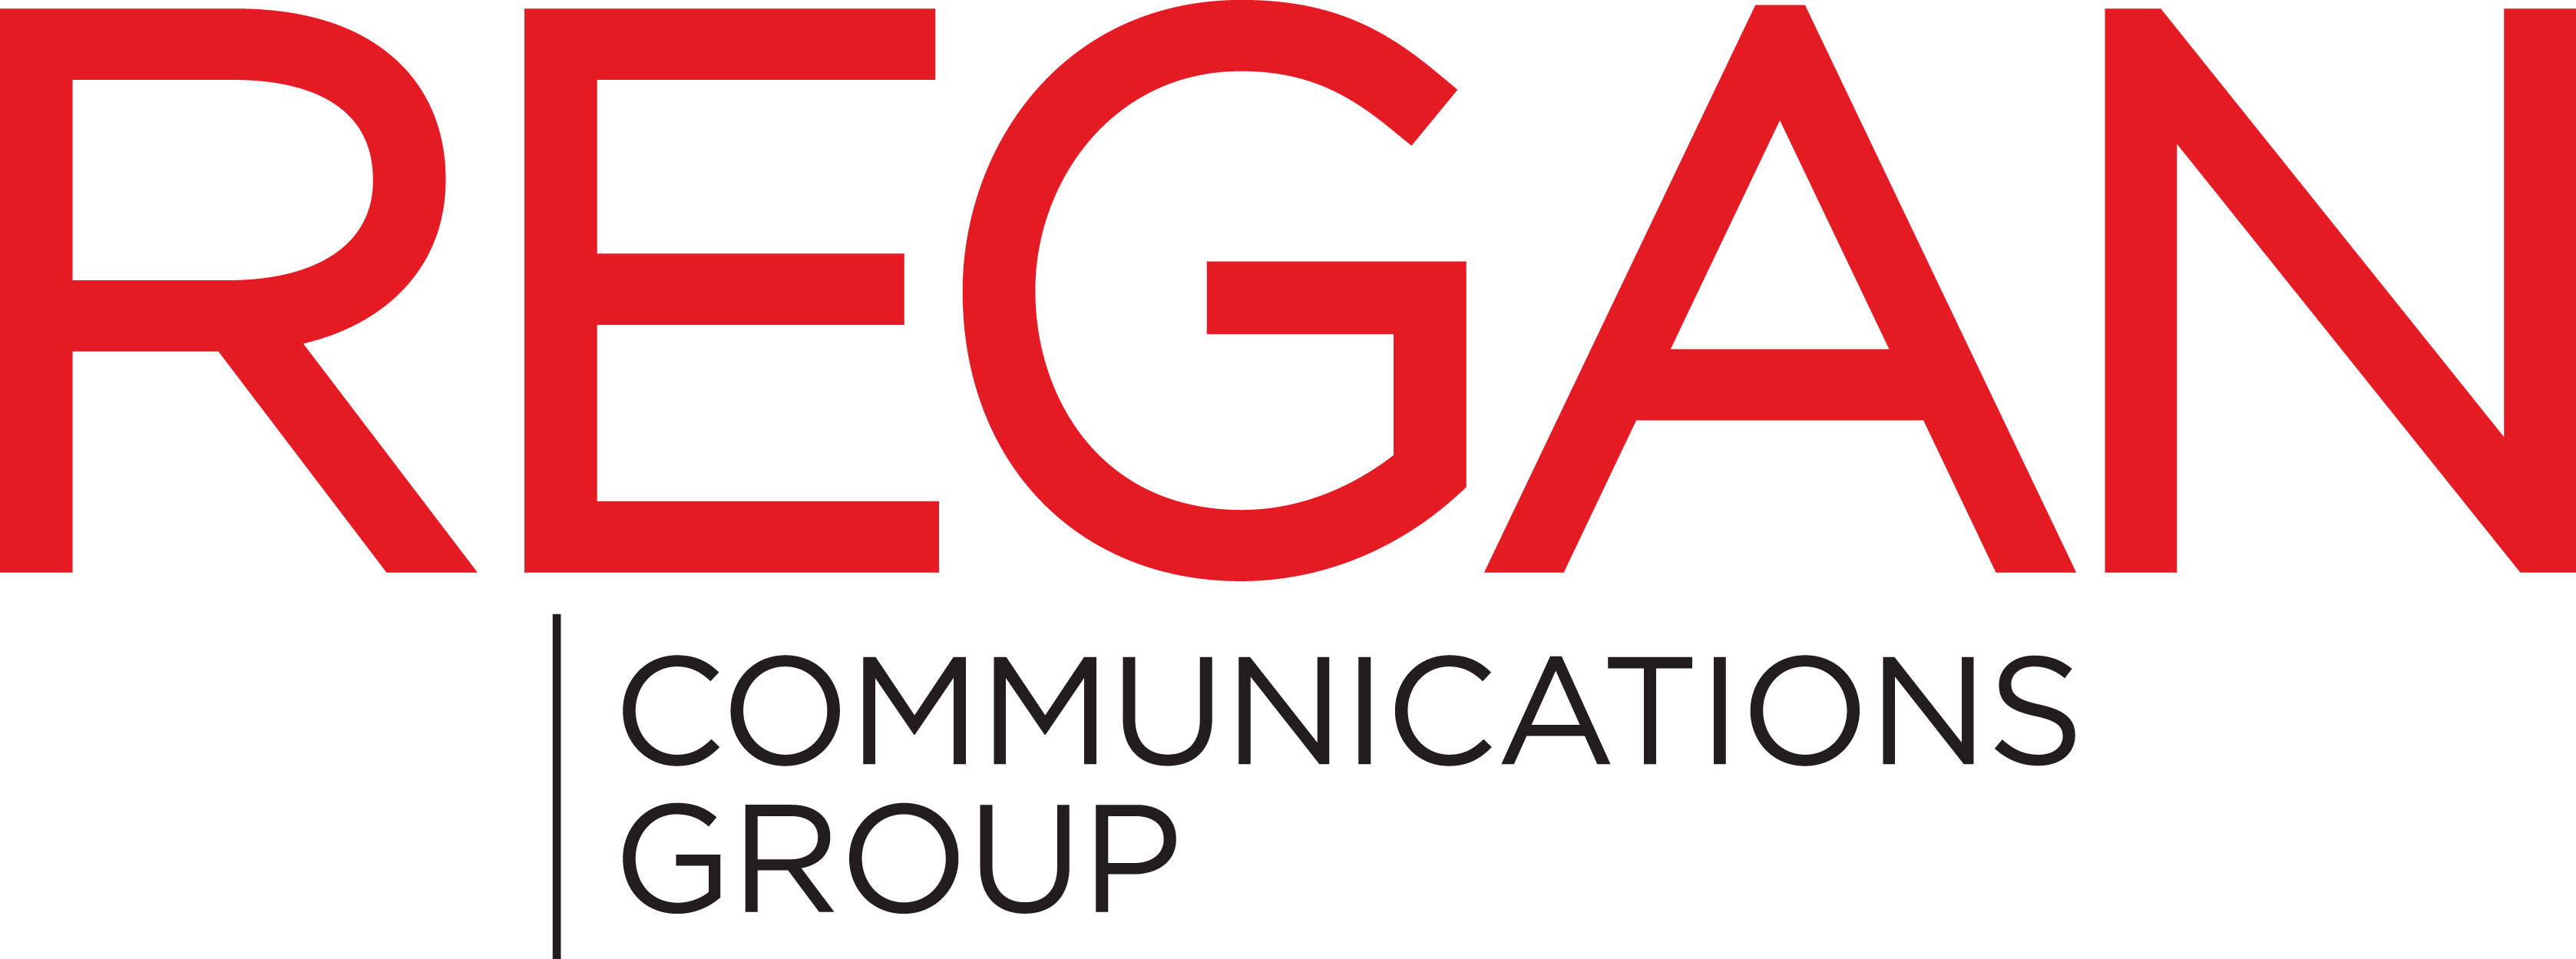 Leading Public Relations Business Logo: Regan Communications Group